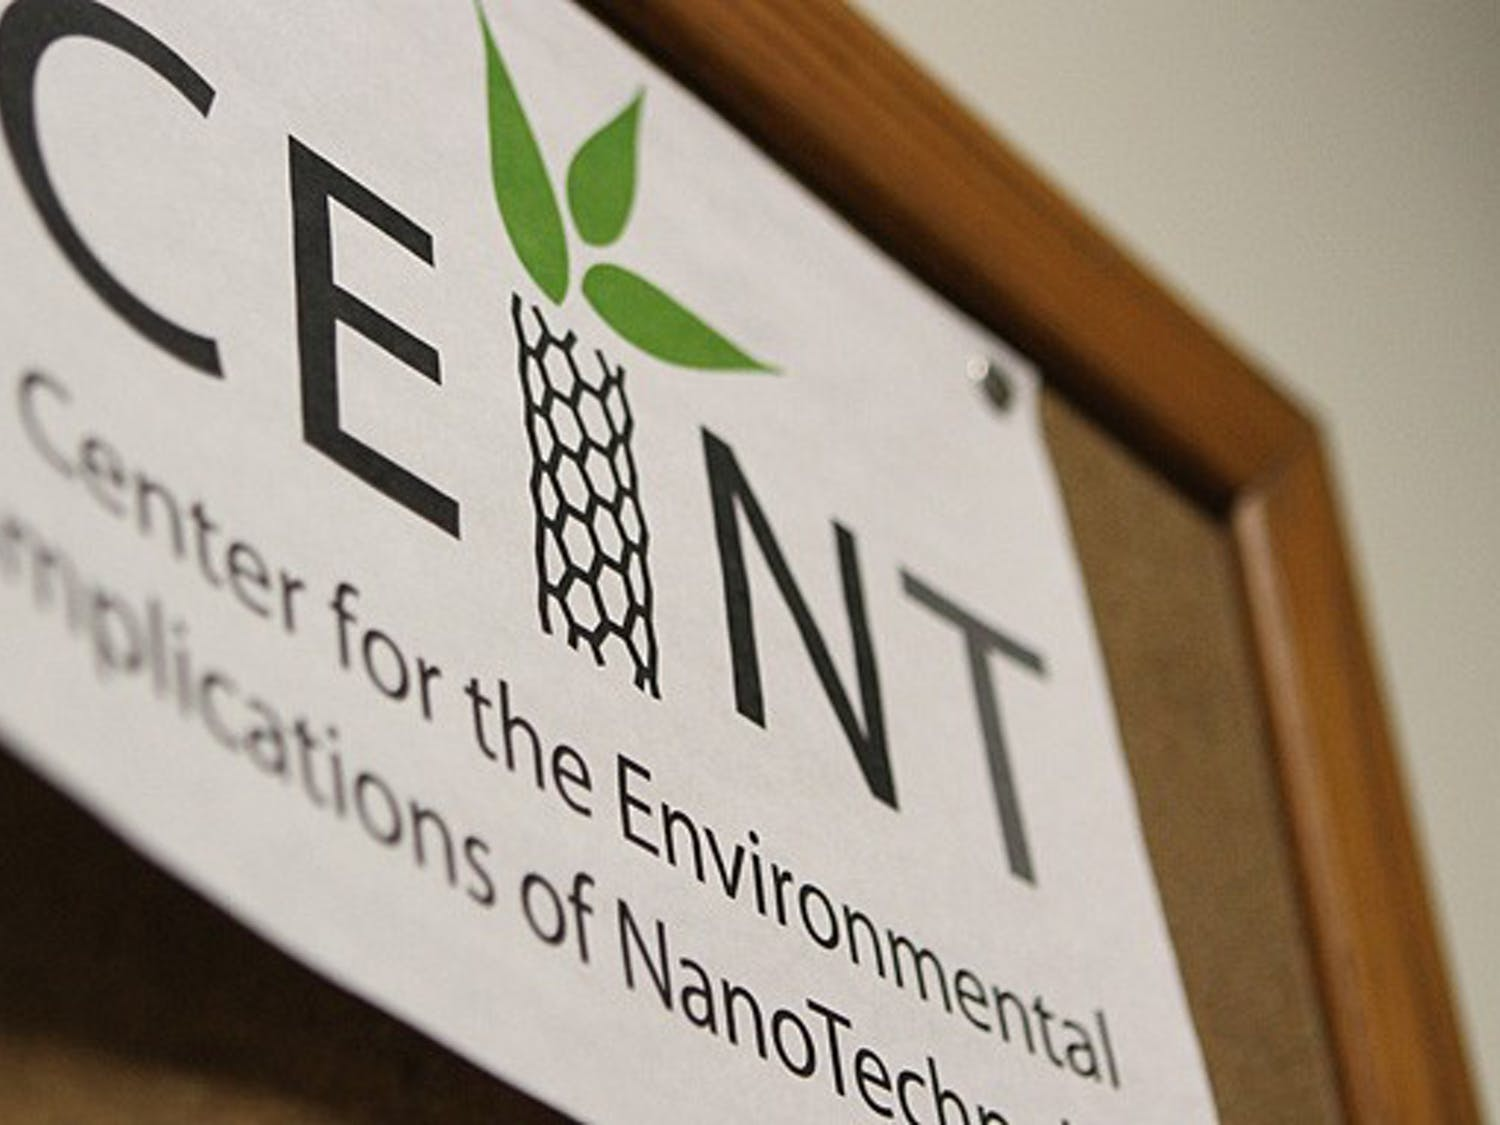 Researchers at the Center for the Environmental Implications of NanoTechnology are looking into the effects of nanoparticles on natural systems, which are currently not well understood.